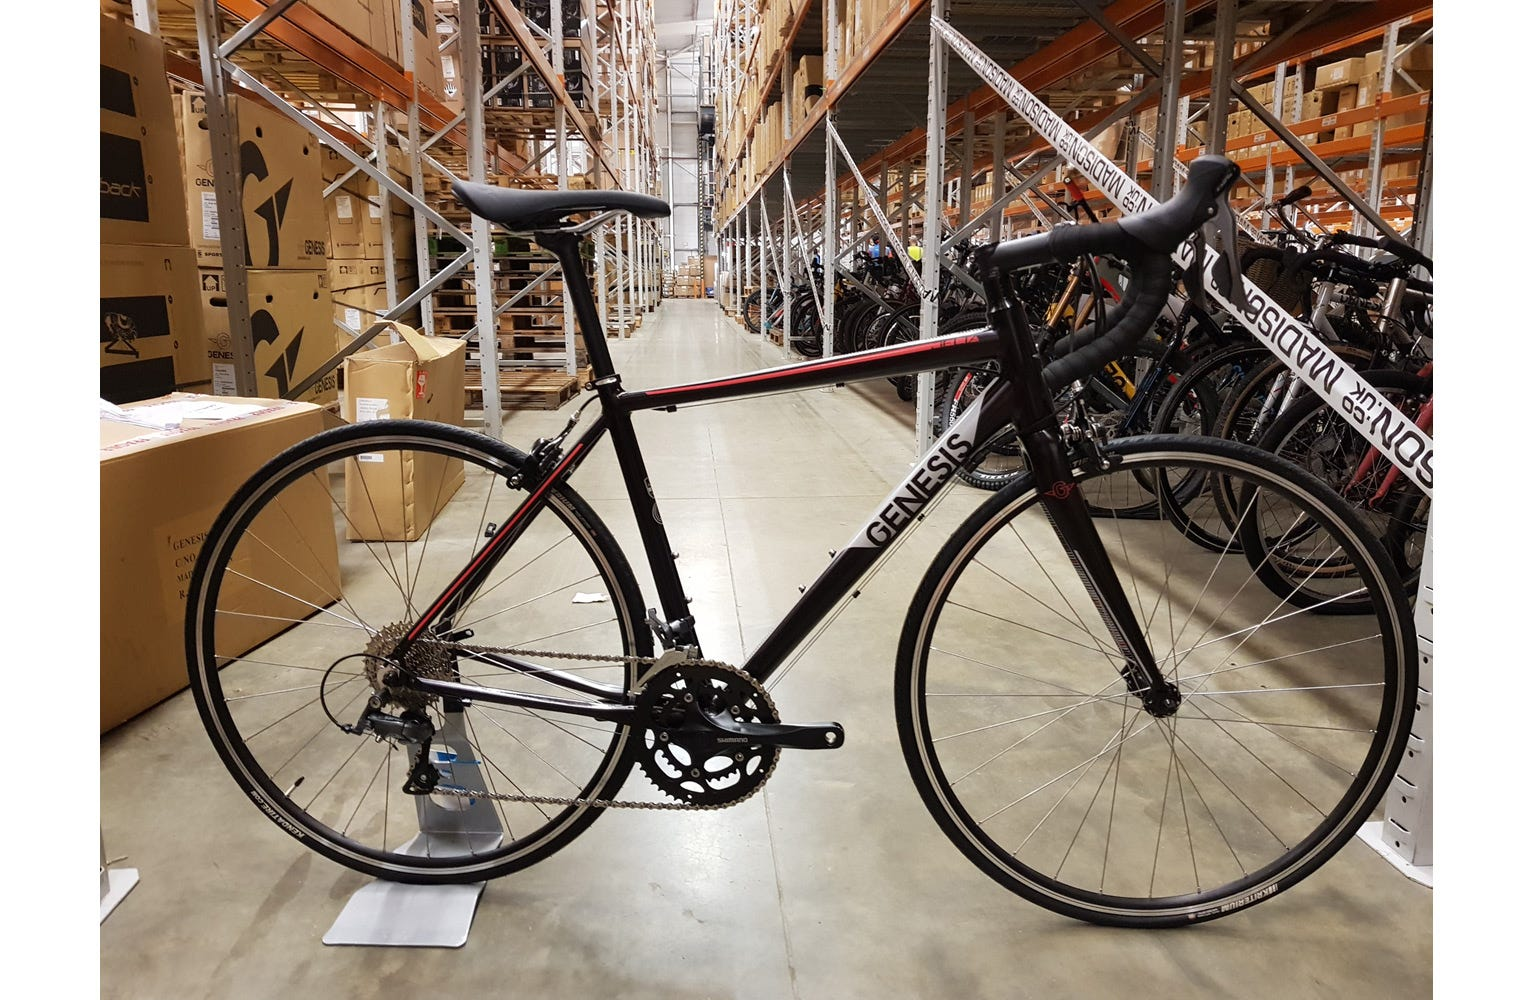 Genesis 2018 Delta 10 W sm Bike sample (used)